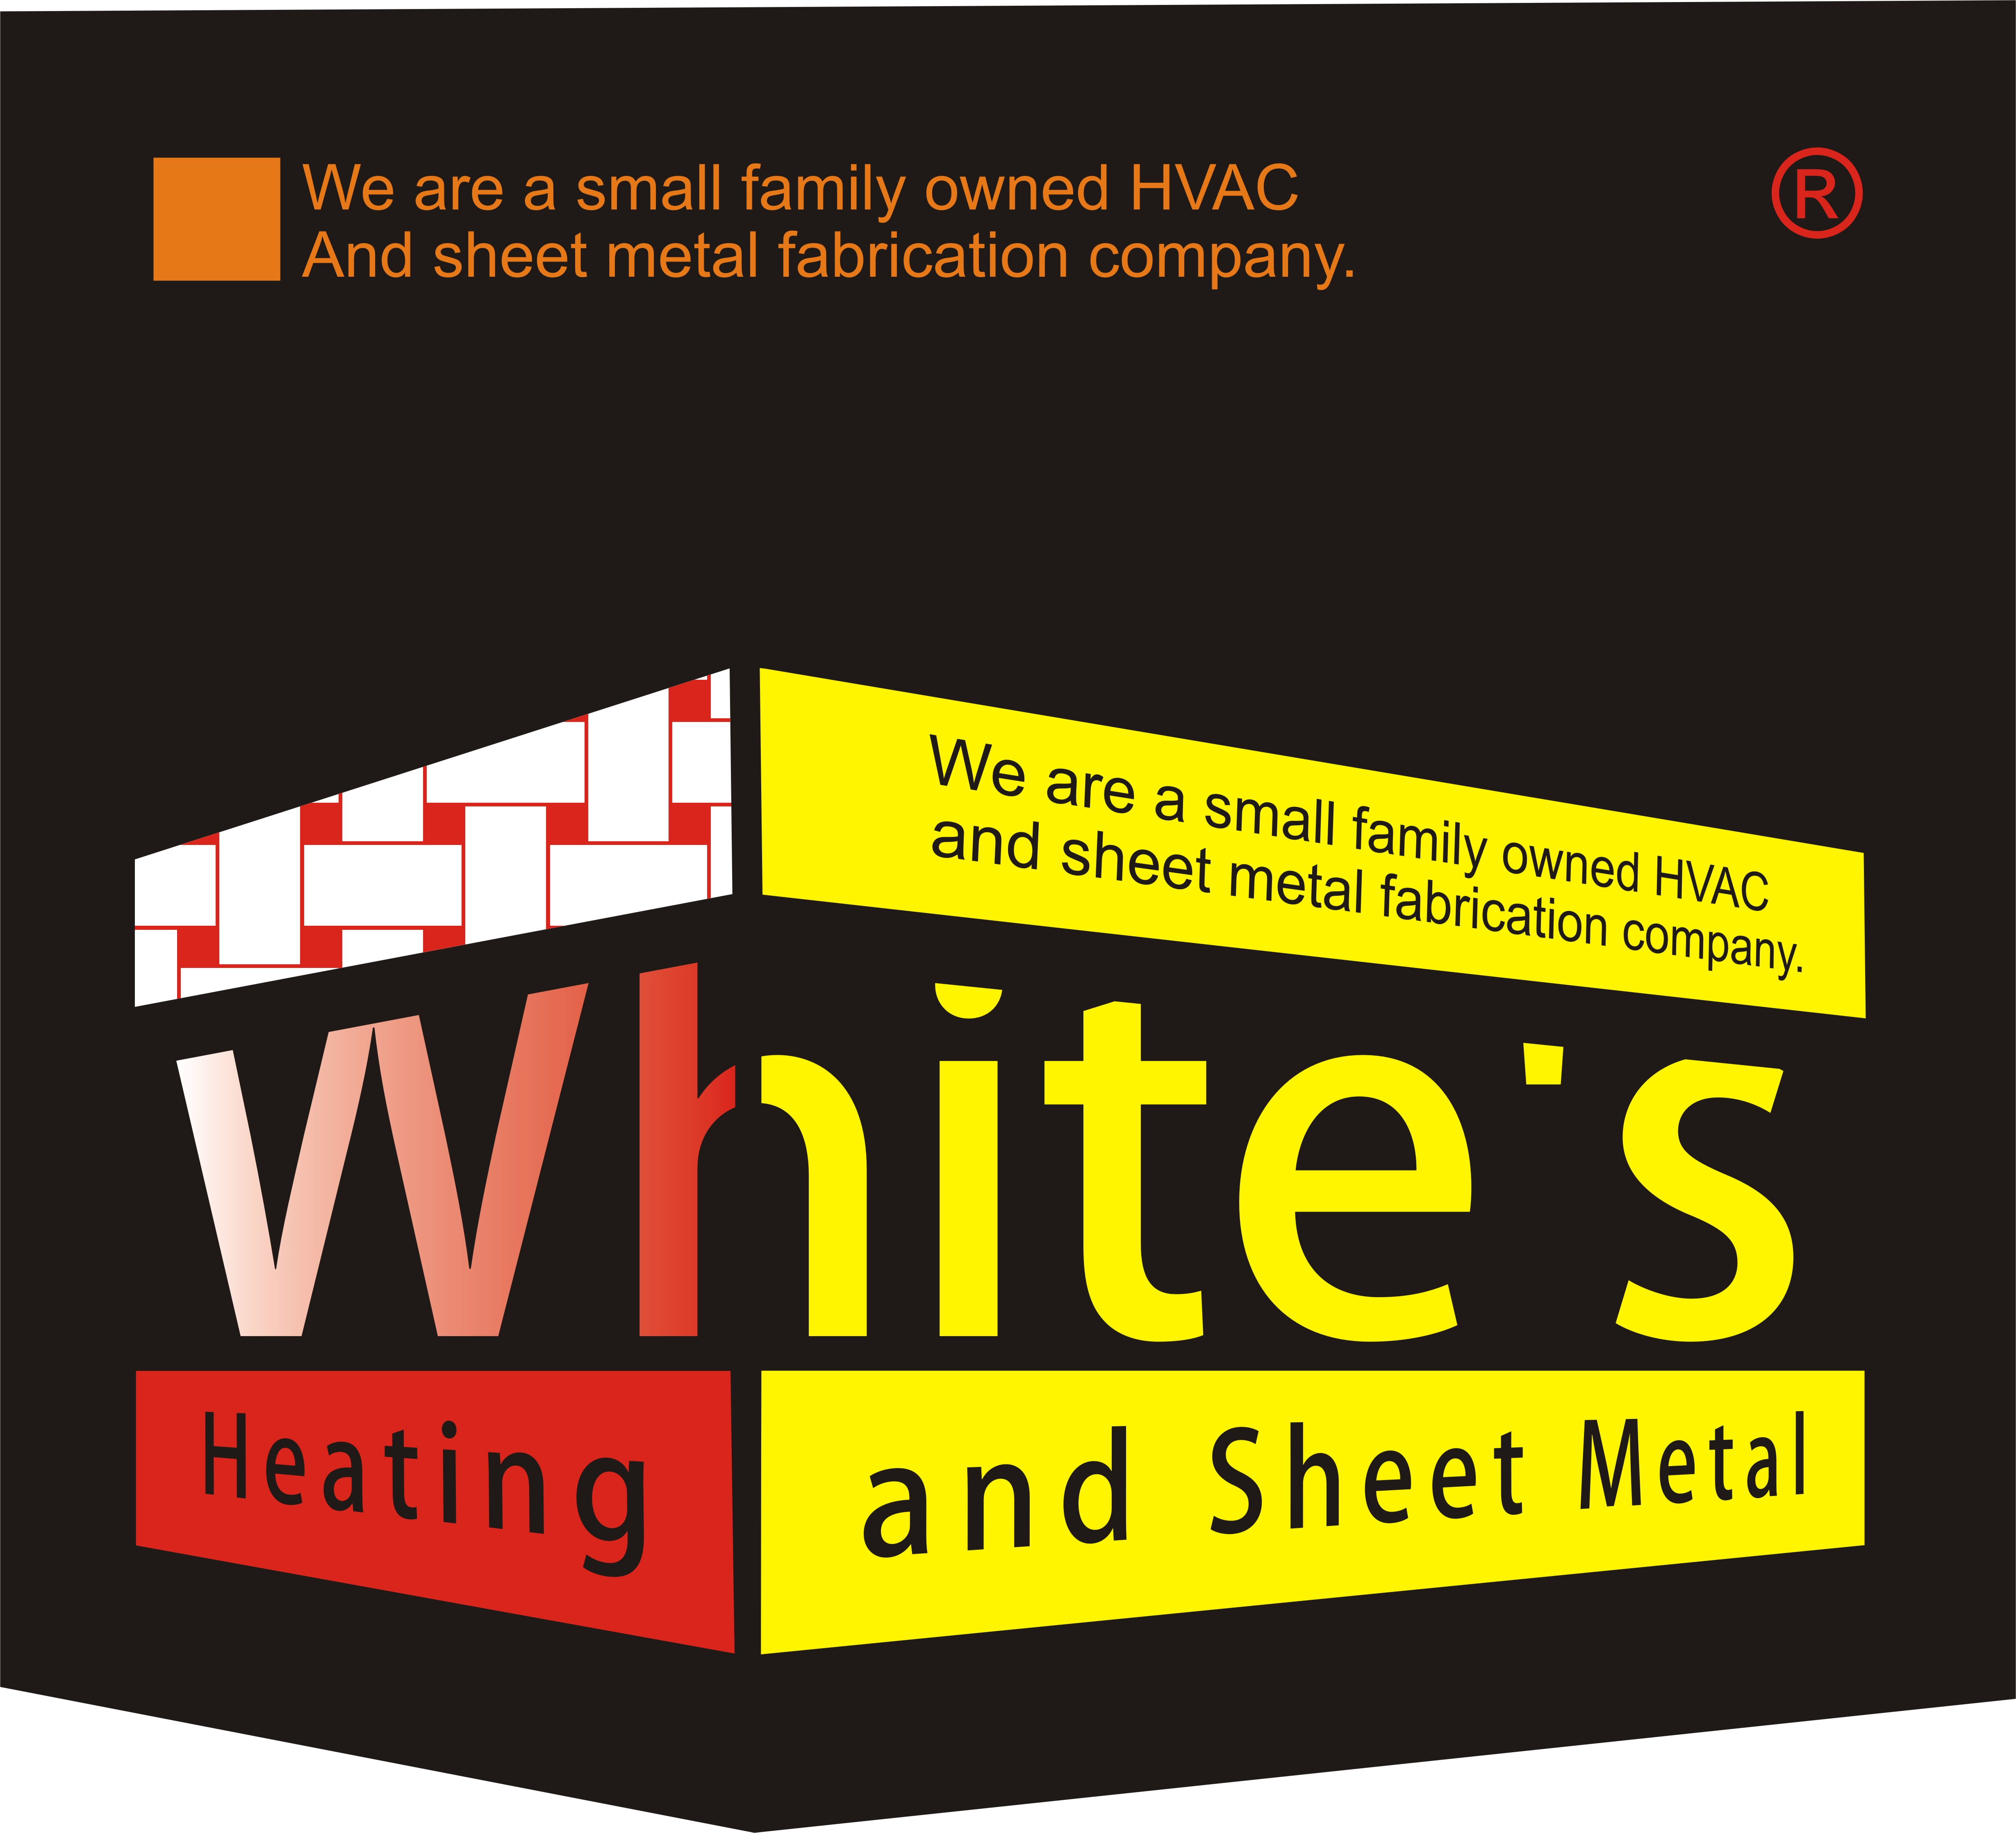 Logo Design by Eic Limber - Entry No. 137 in the Logo Design Contest Imaginative Logo Design for White's Heating and Sheet Metal.